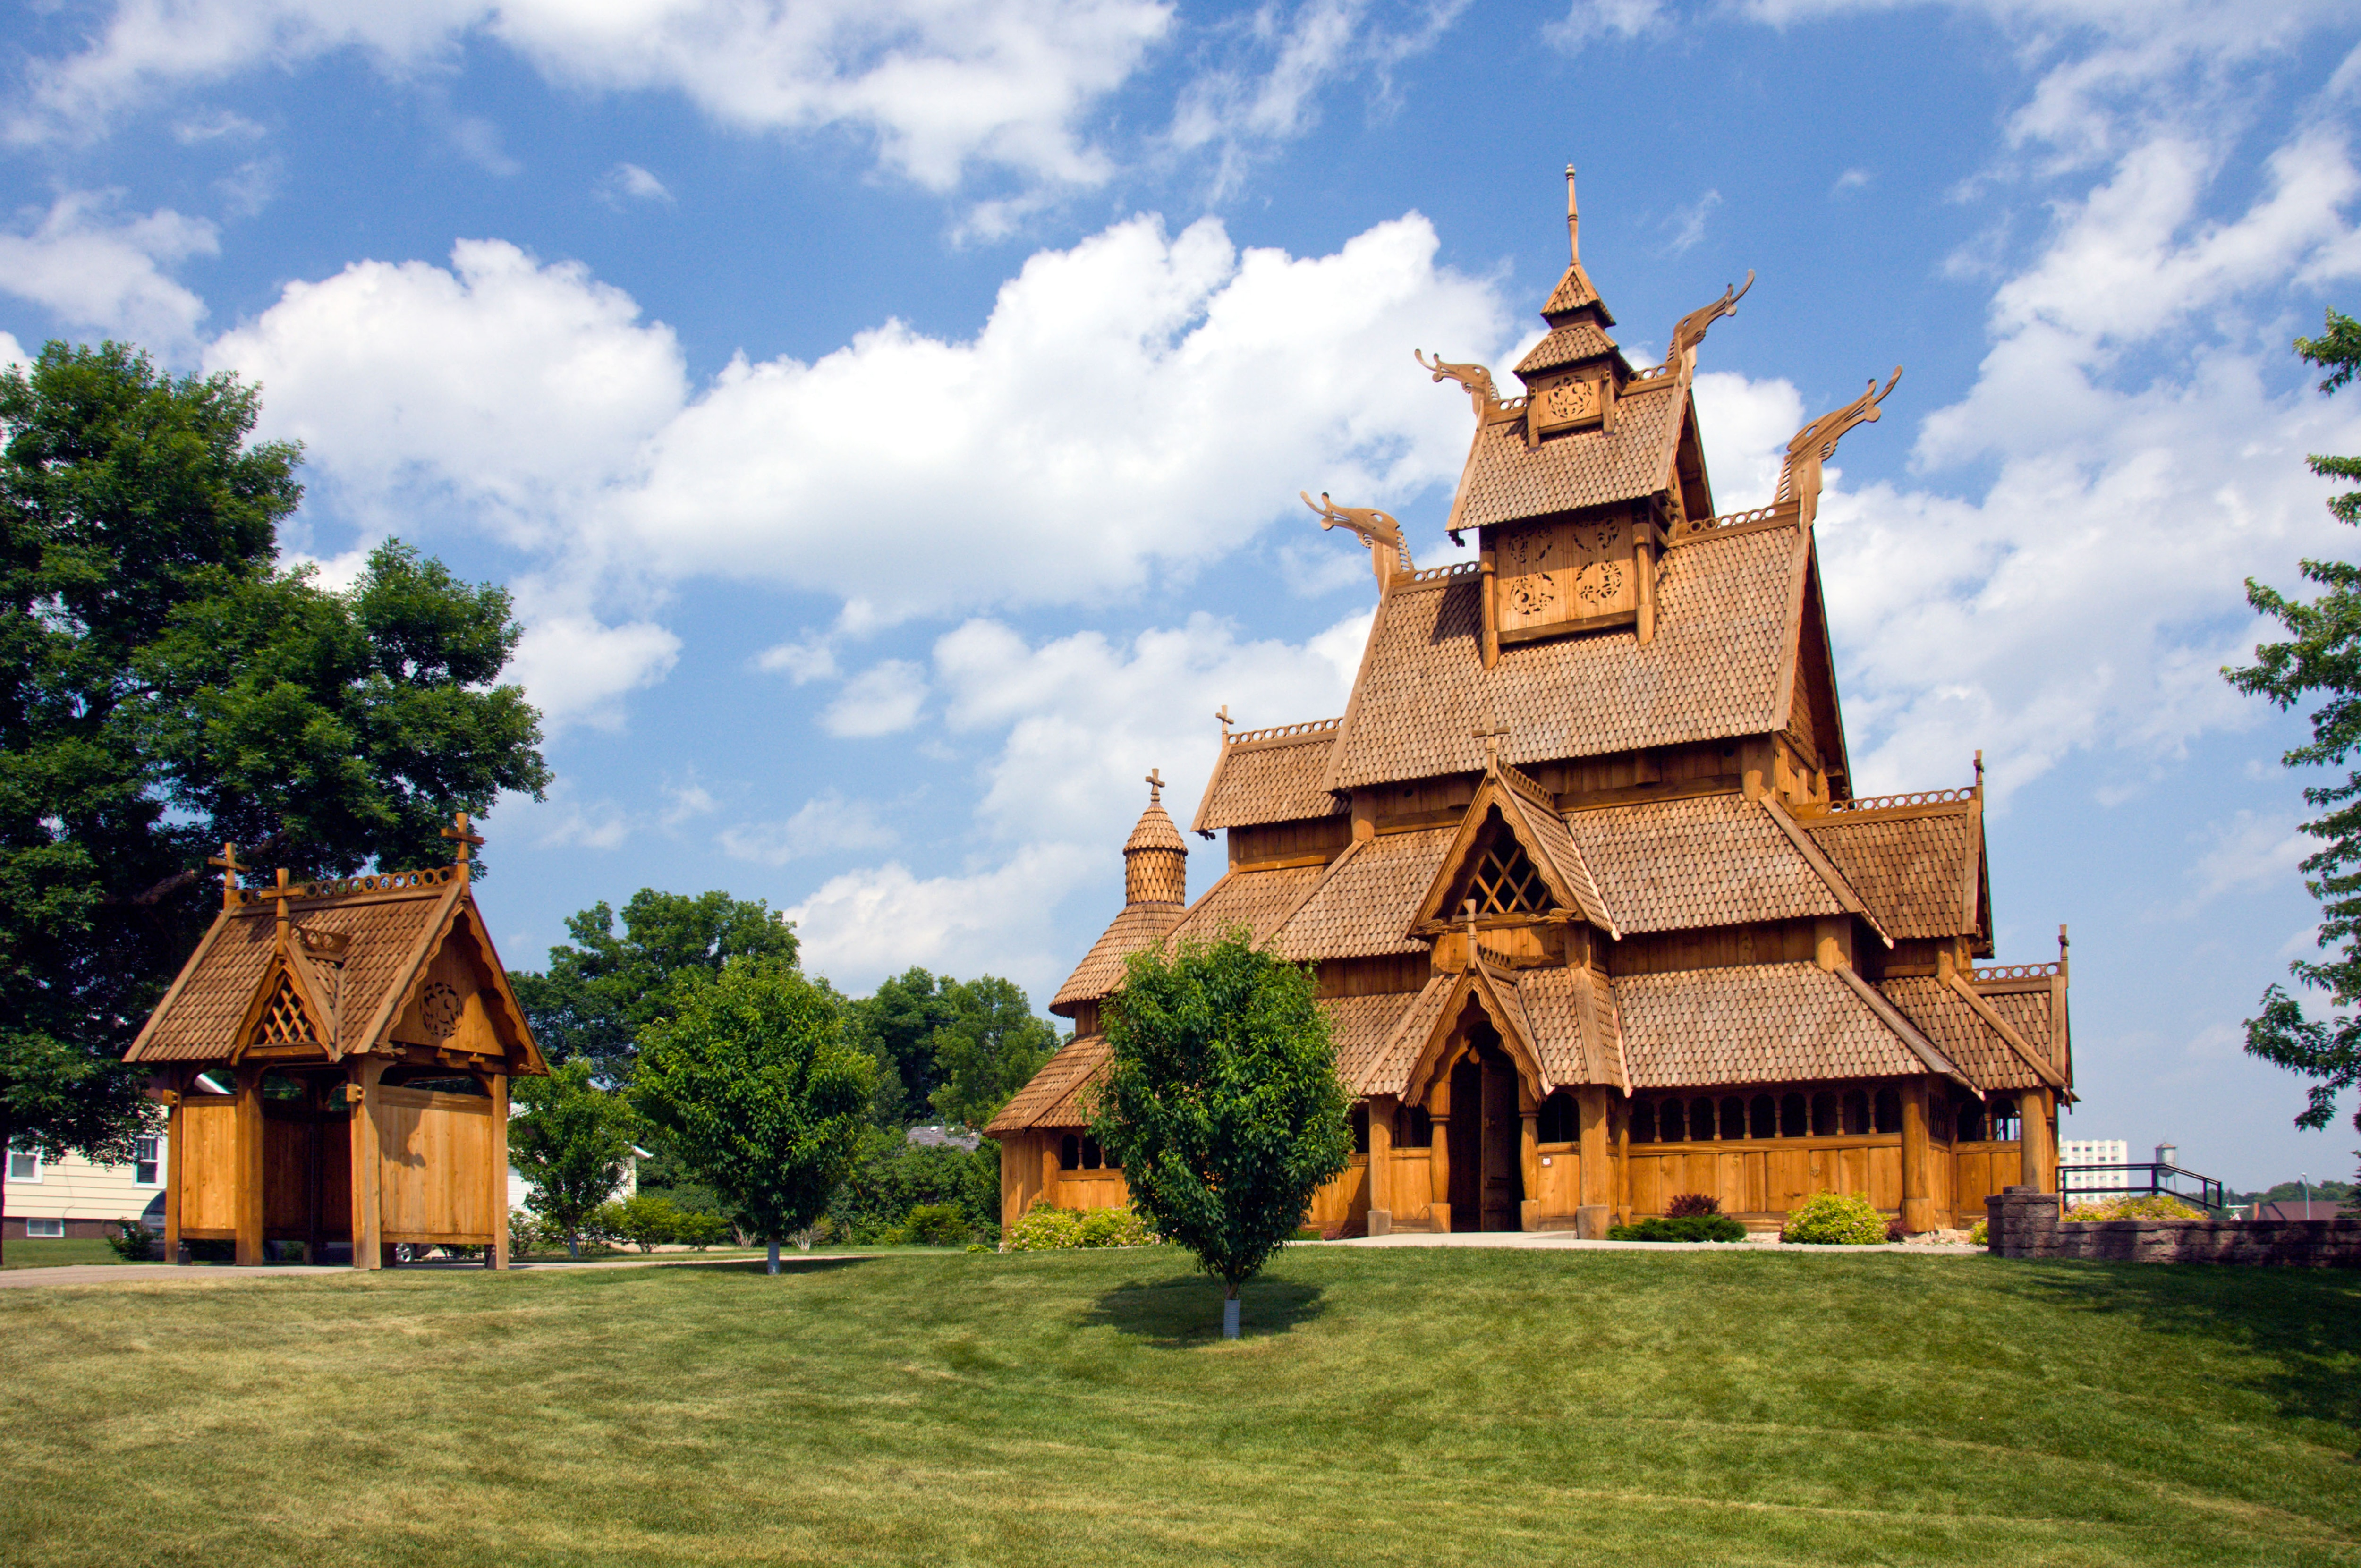 Full-size replica of medieval church (© America/Alamy Stock Photo)